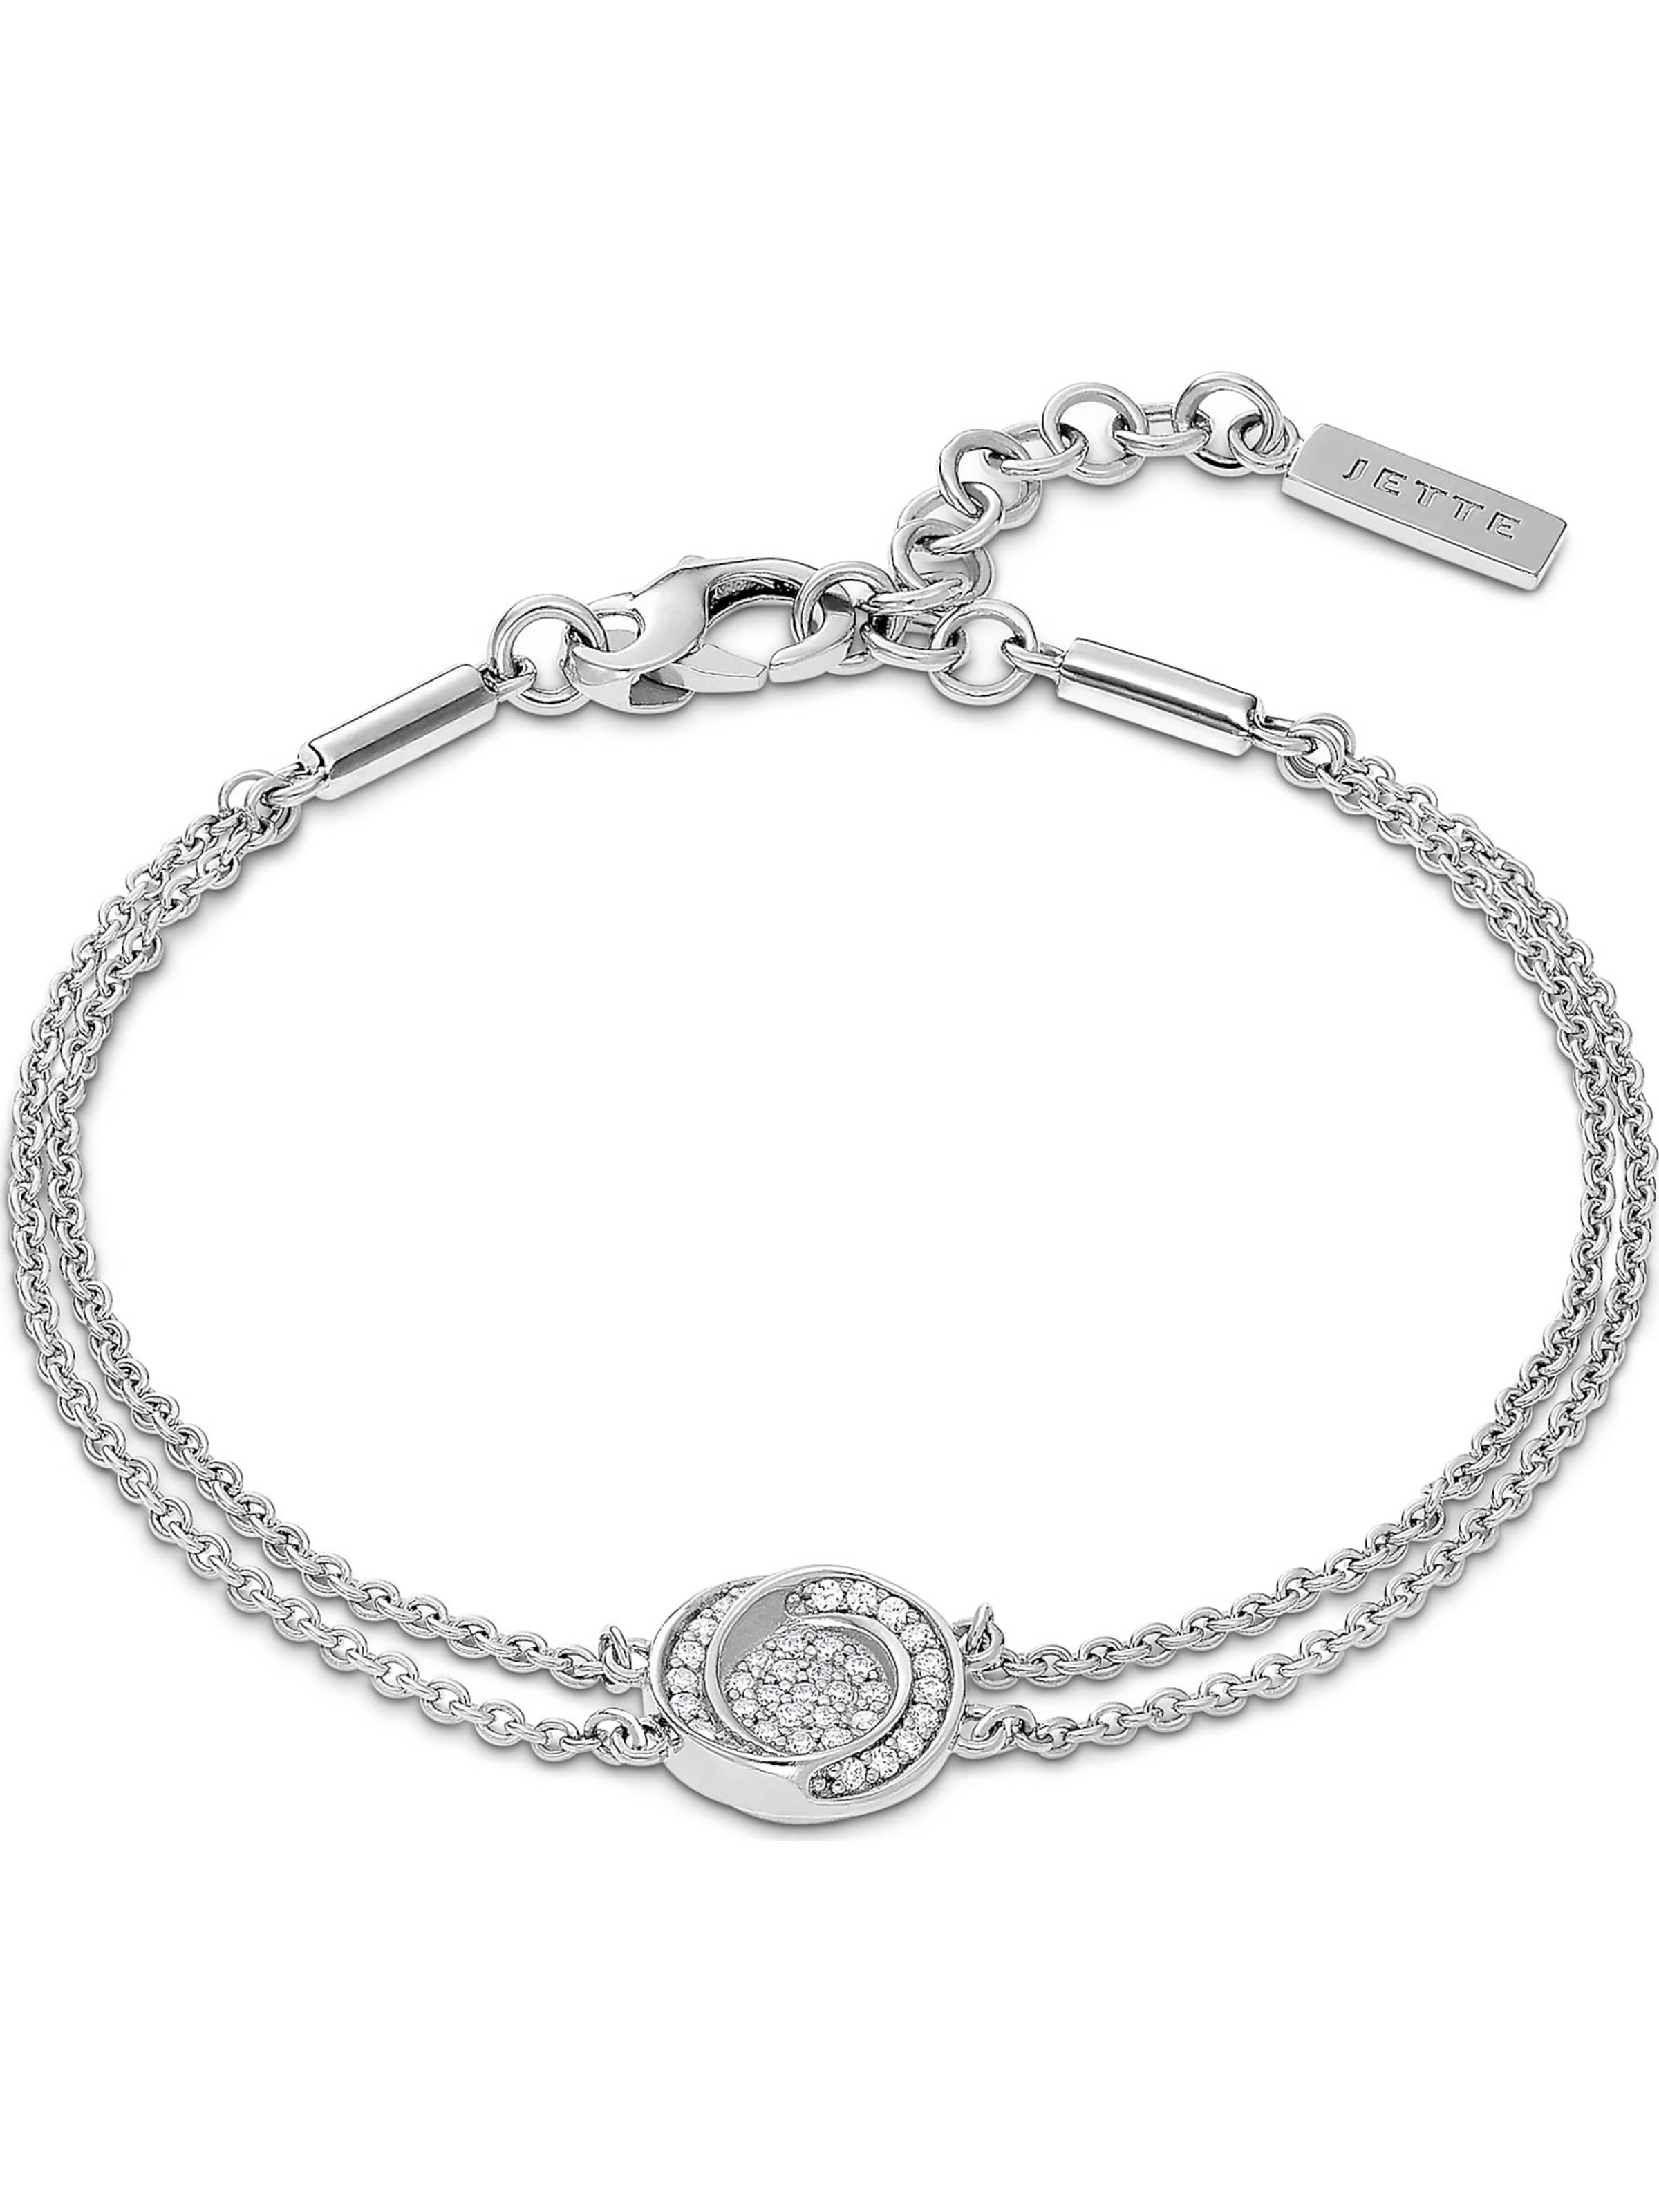 SilberWeiß Jette Armband In In Armband Jette SilberWeiß Armband Jette In HIE9YD2W